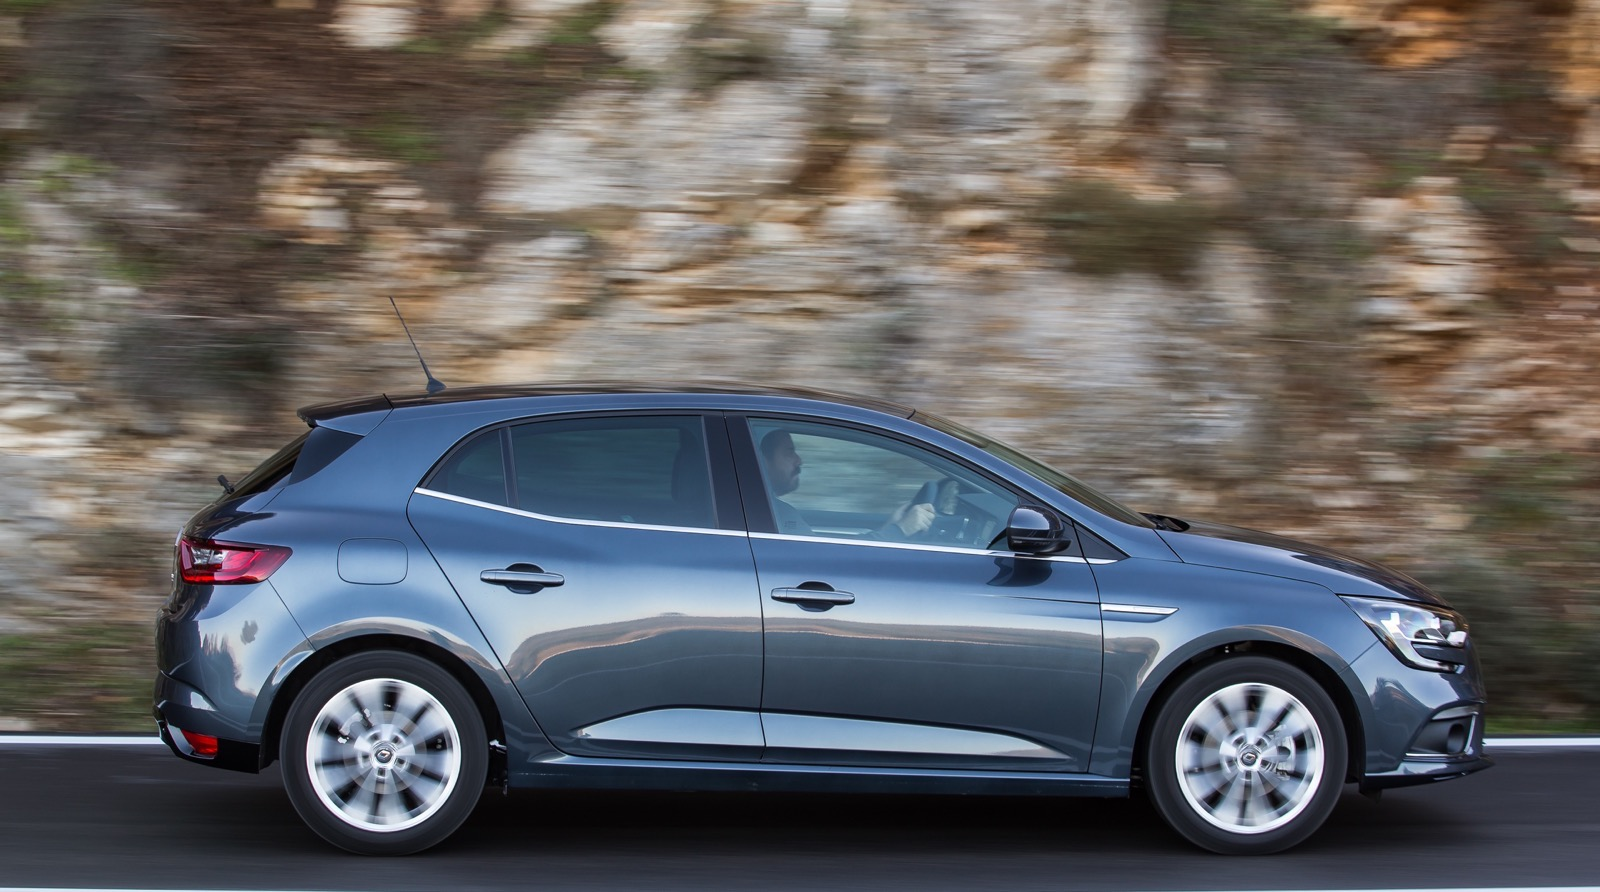 First_Drive_Renault_Megane_71